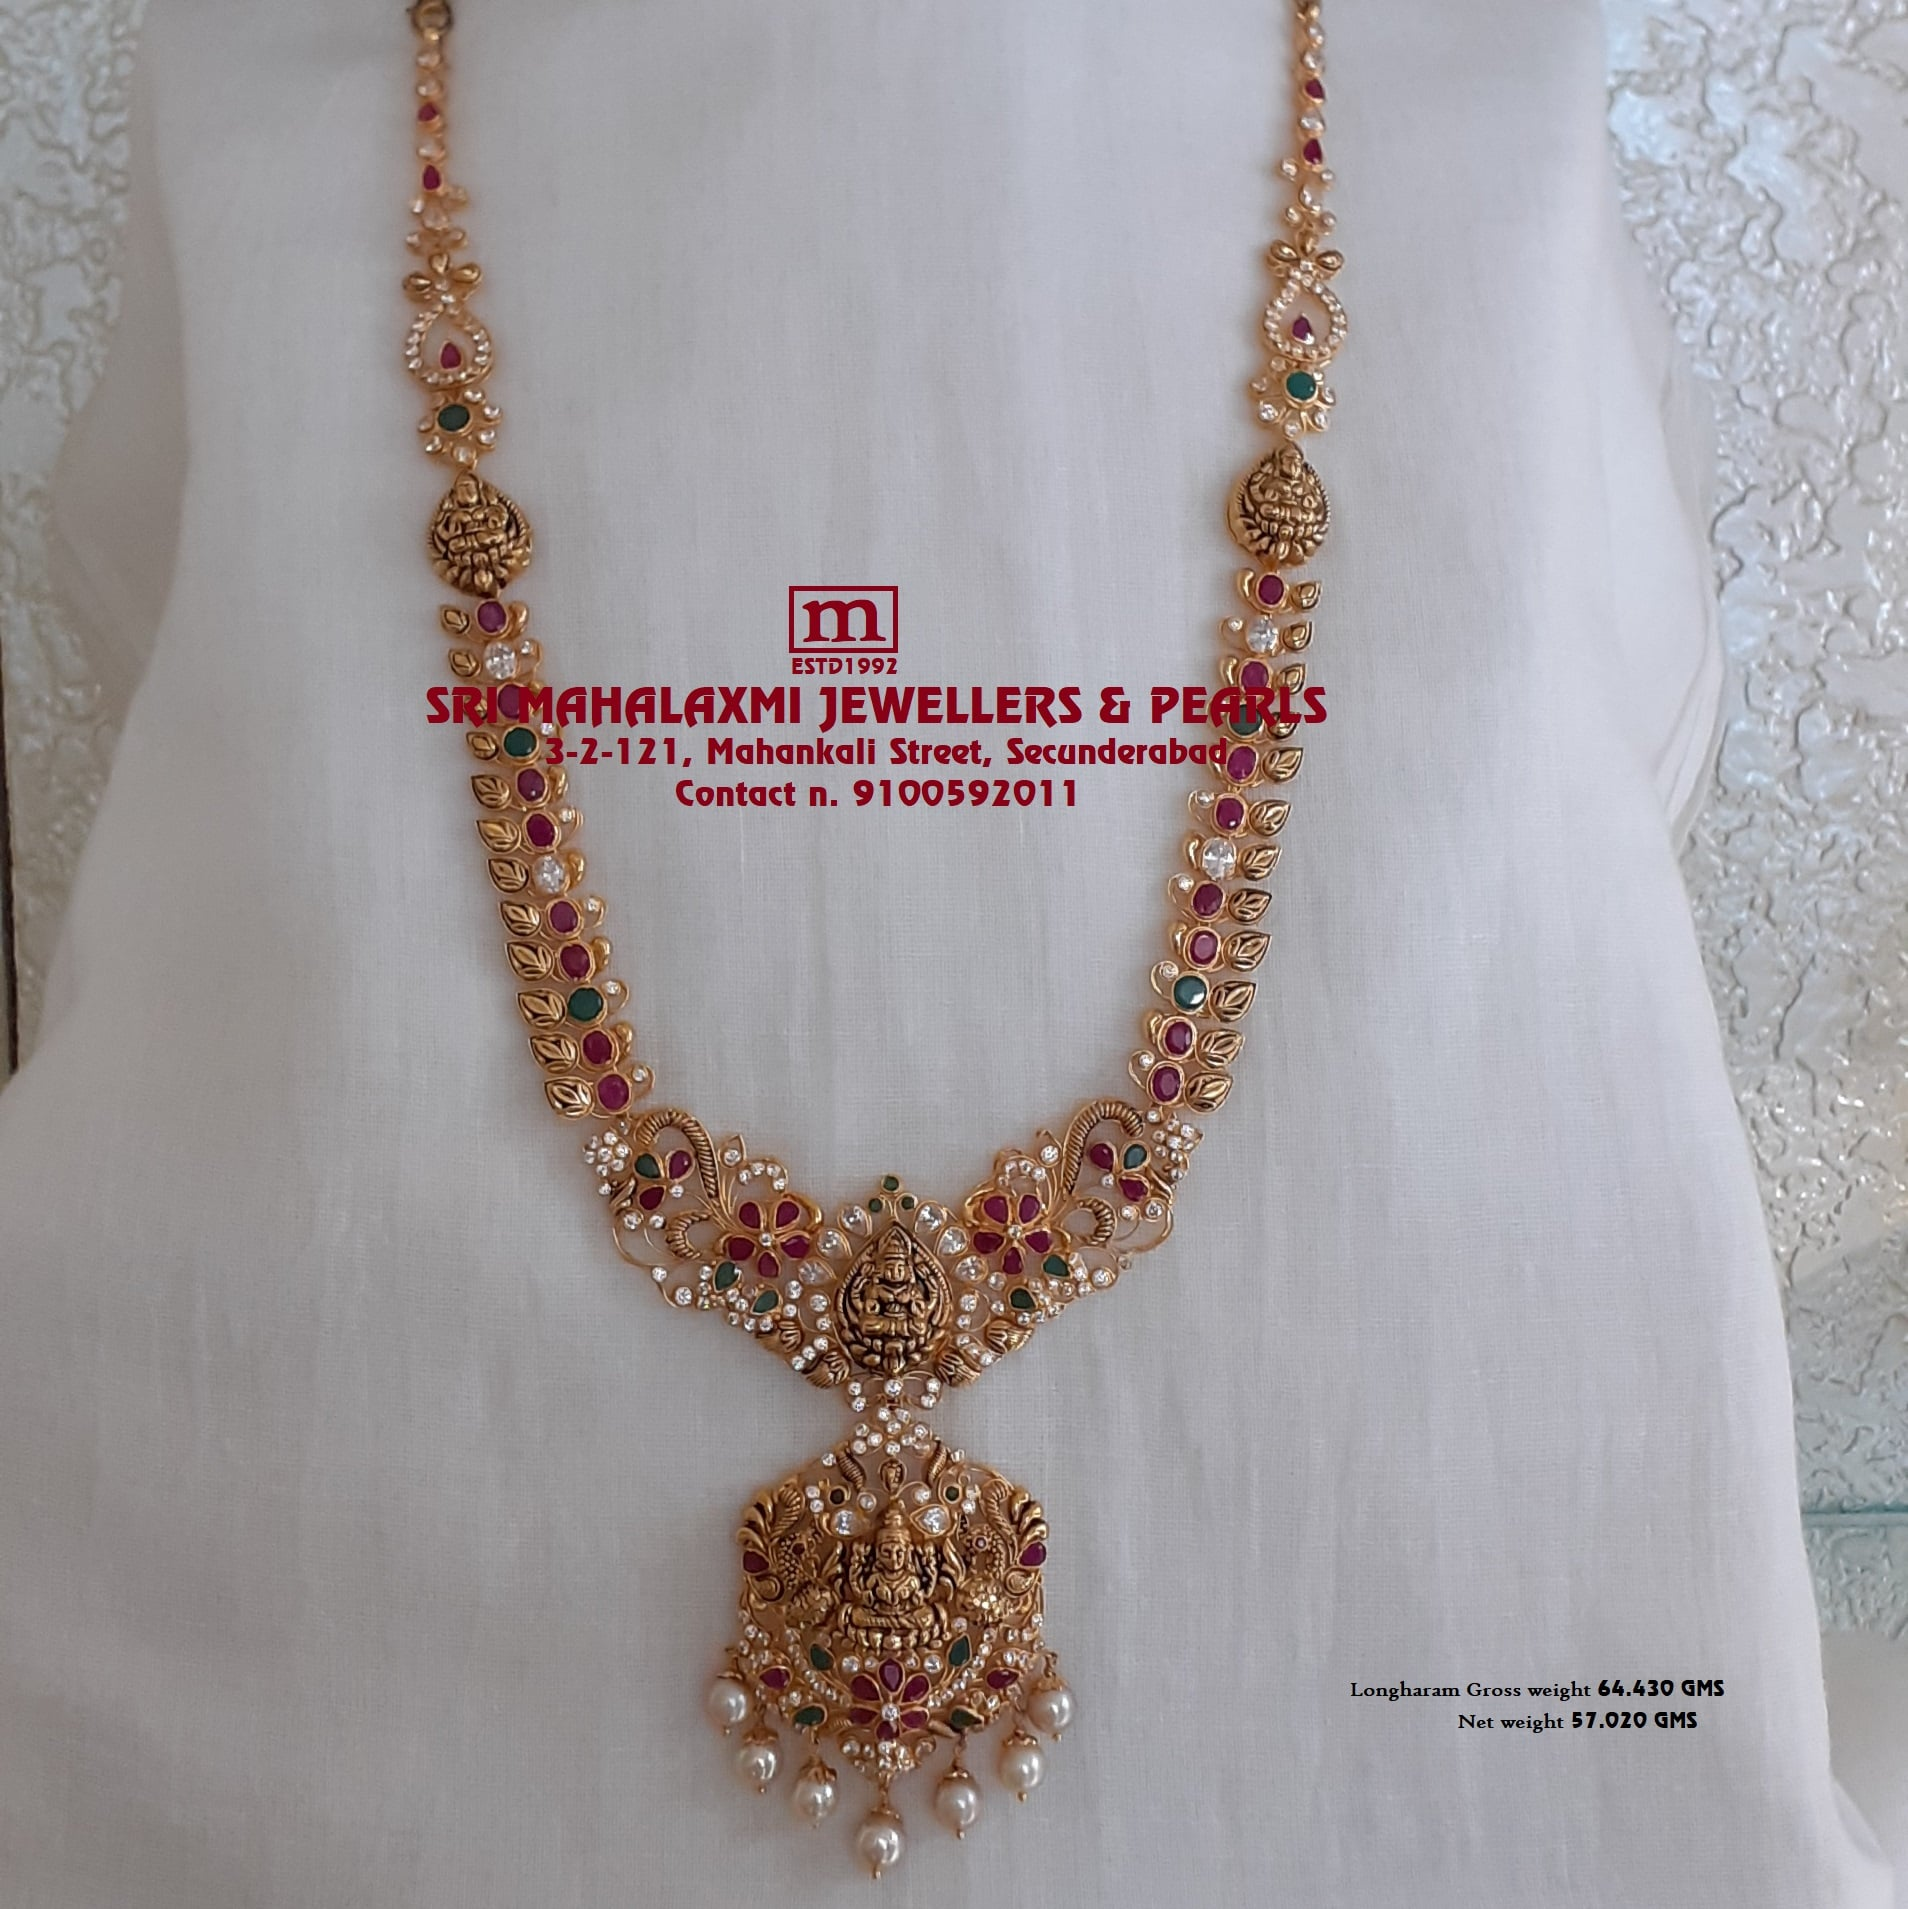 Presenting here is Light Weight Rech Looking Nakshi Mongo`s Laxmiji Longharam Studded with Ruby Emerald cz`s and South Sea Pearls Most Competitive PRICE`S Video Call  on 9100592011 |  |  |  | 2020-12-22